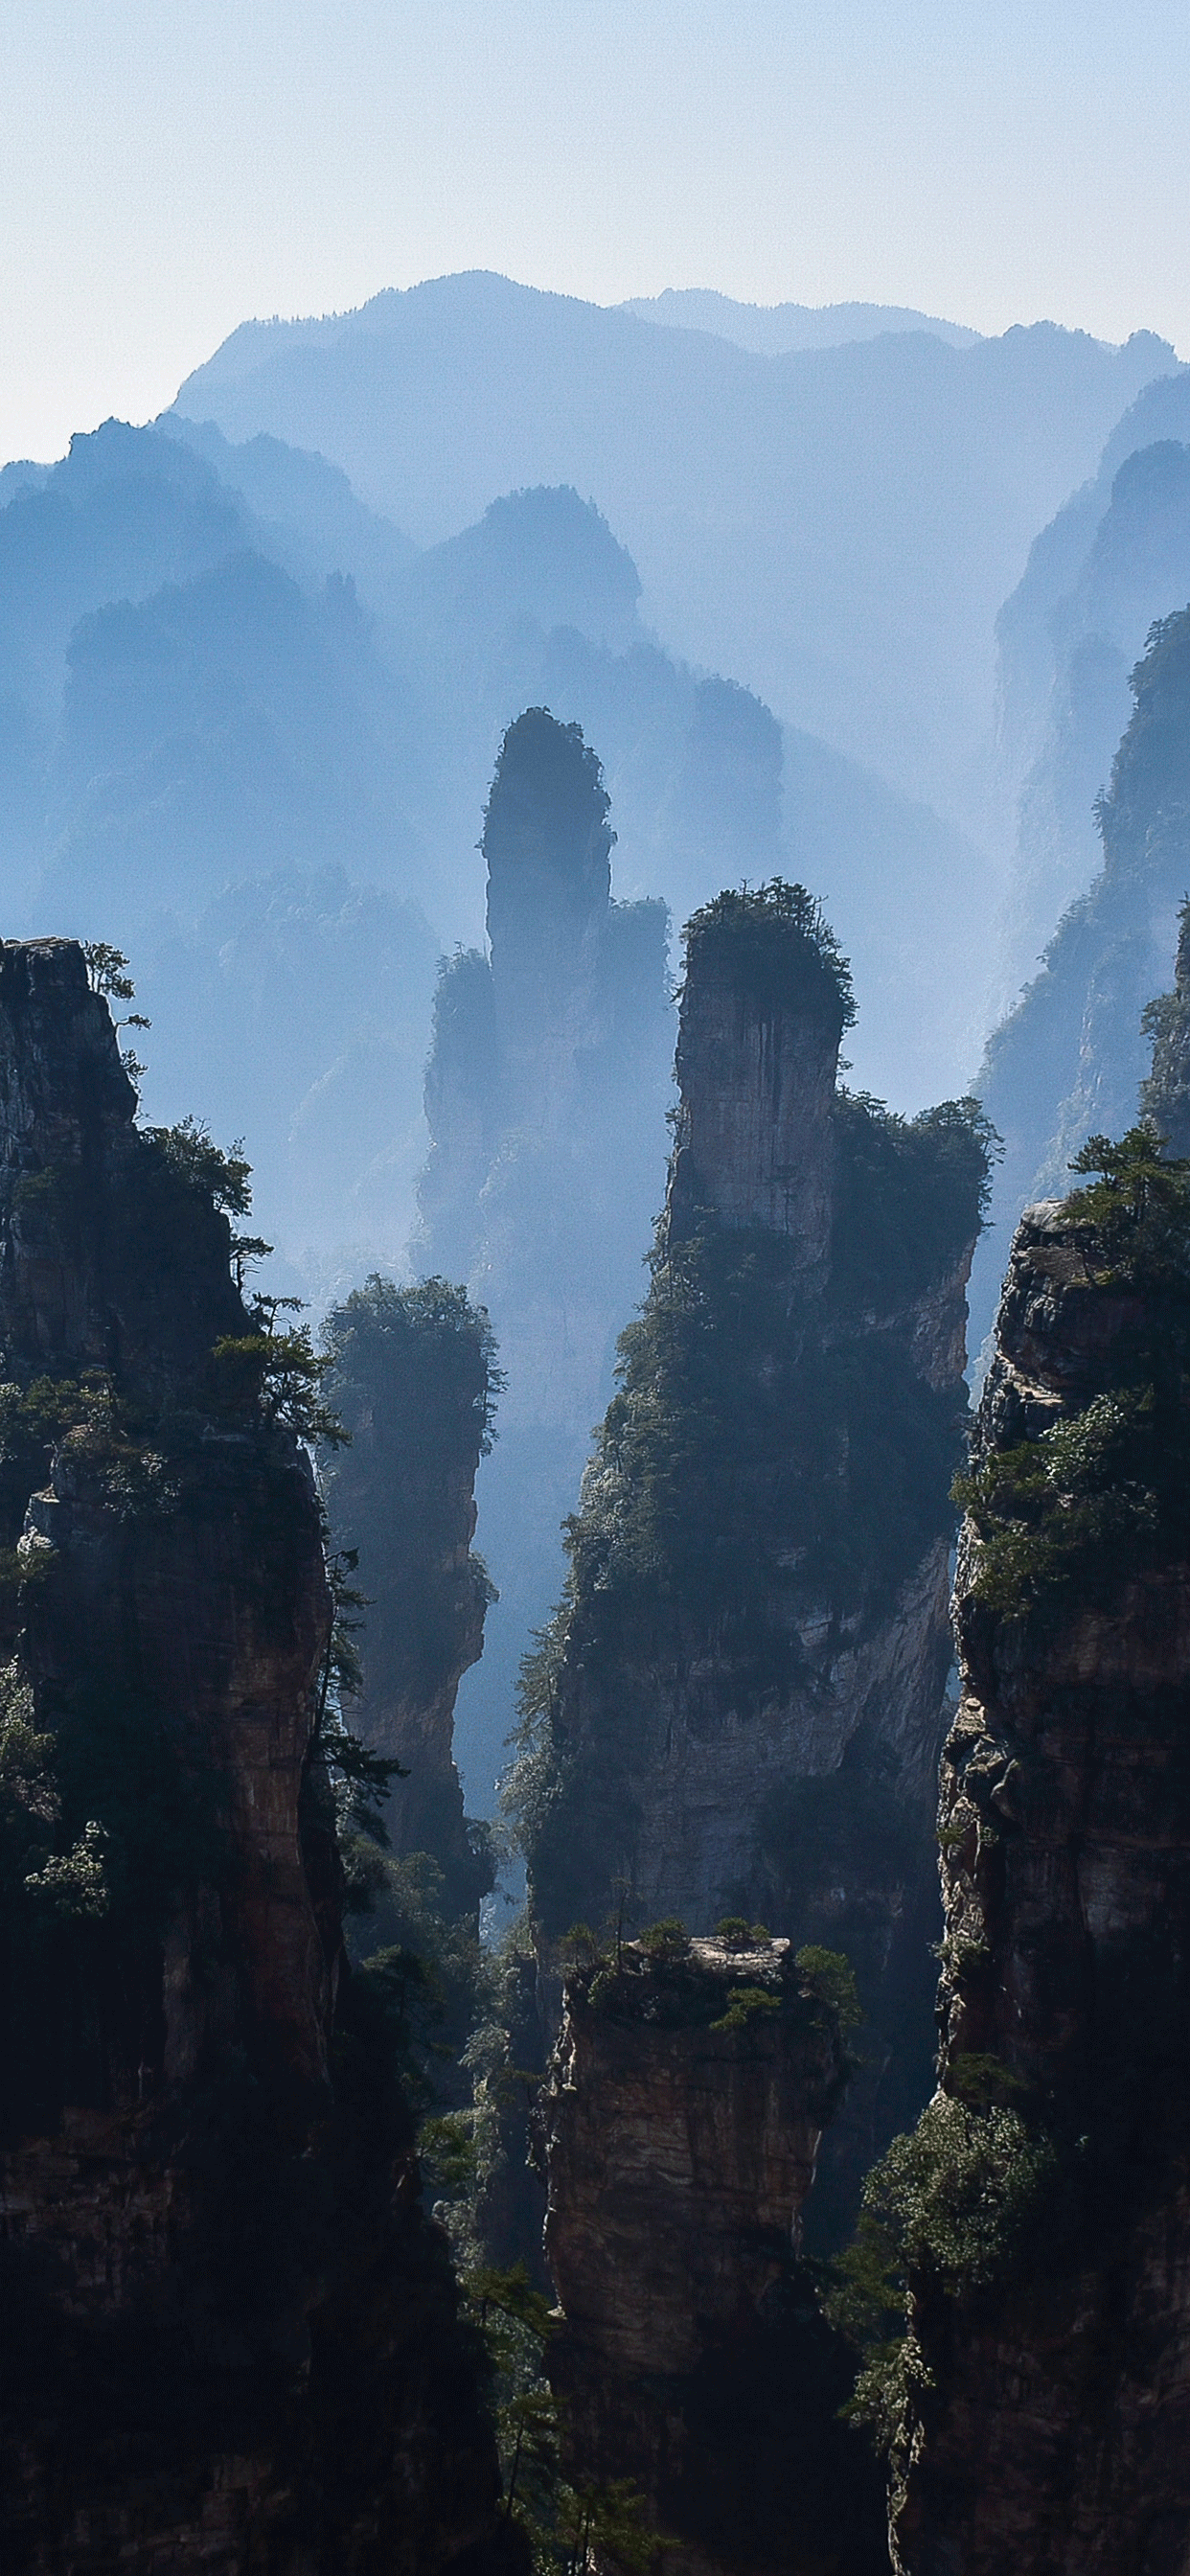 iPhone wallpapers zhangjiajie national park 3 Fonds d'écran iPhone du 17/06/2019